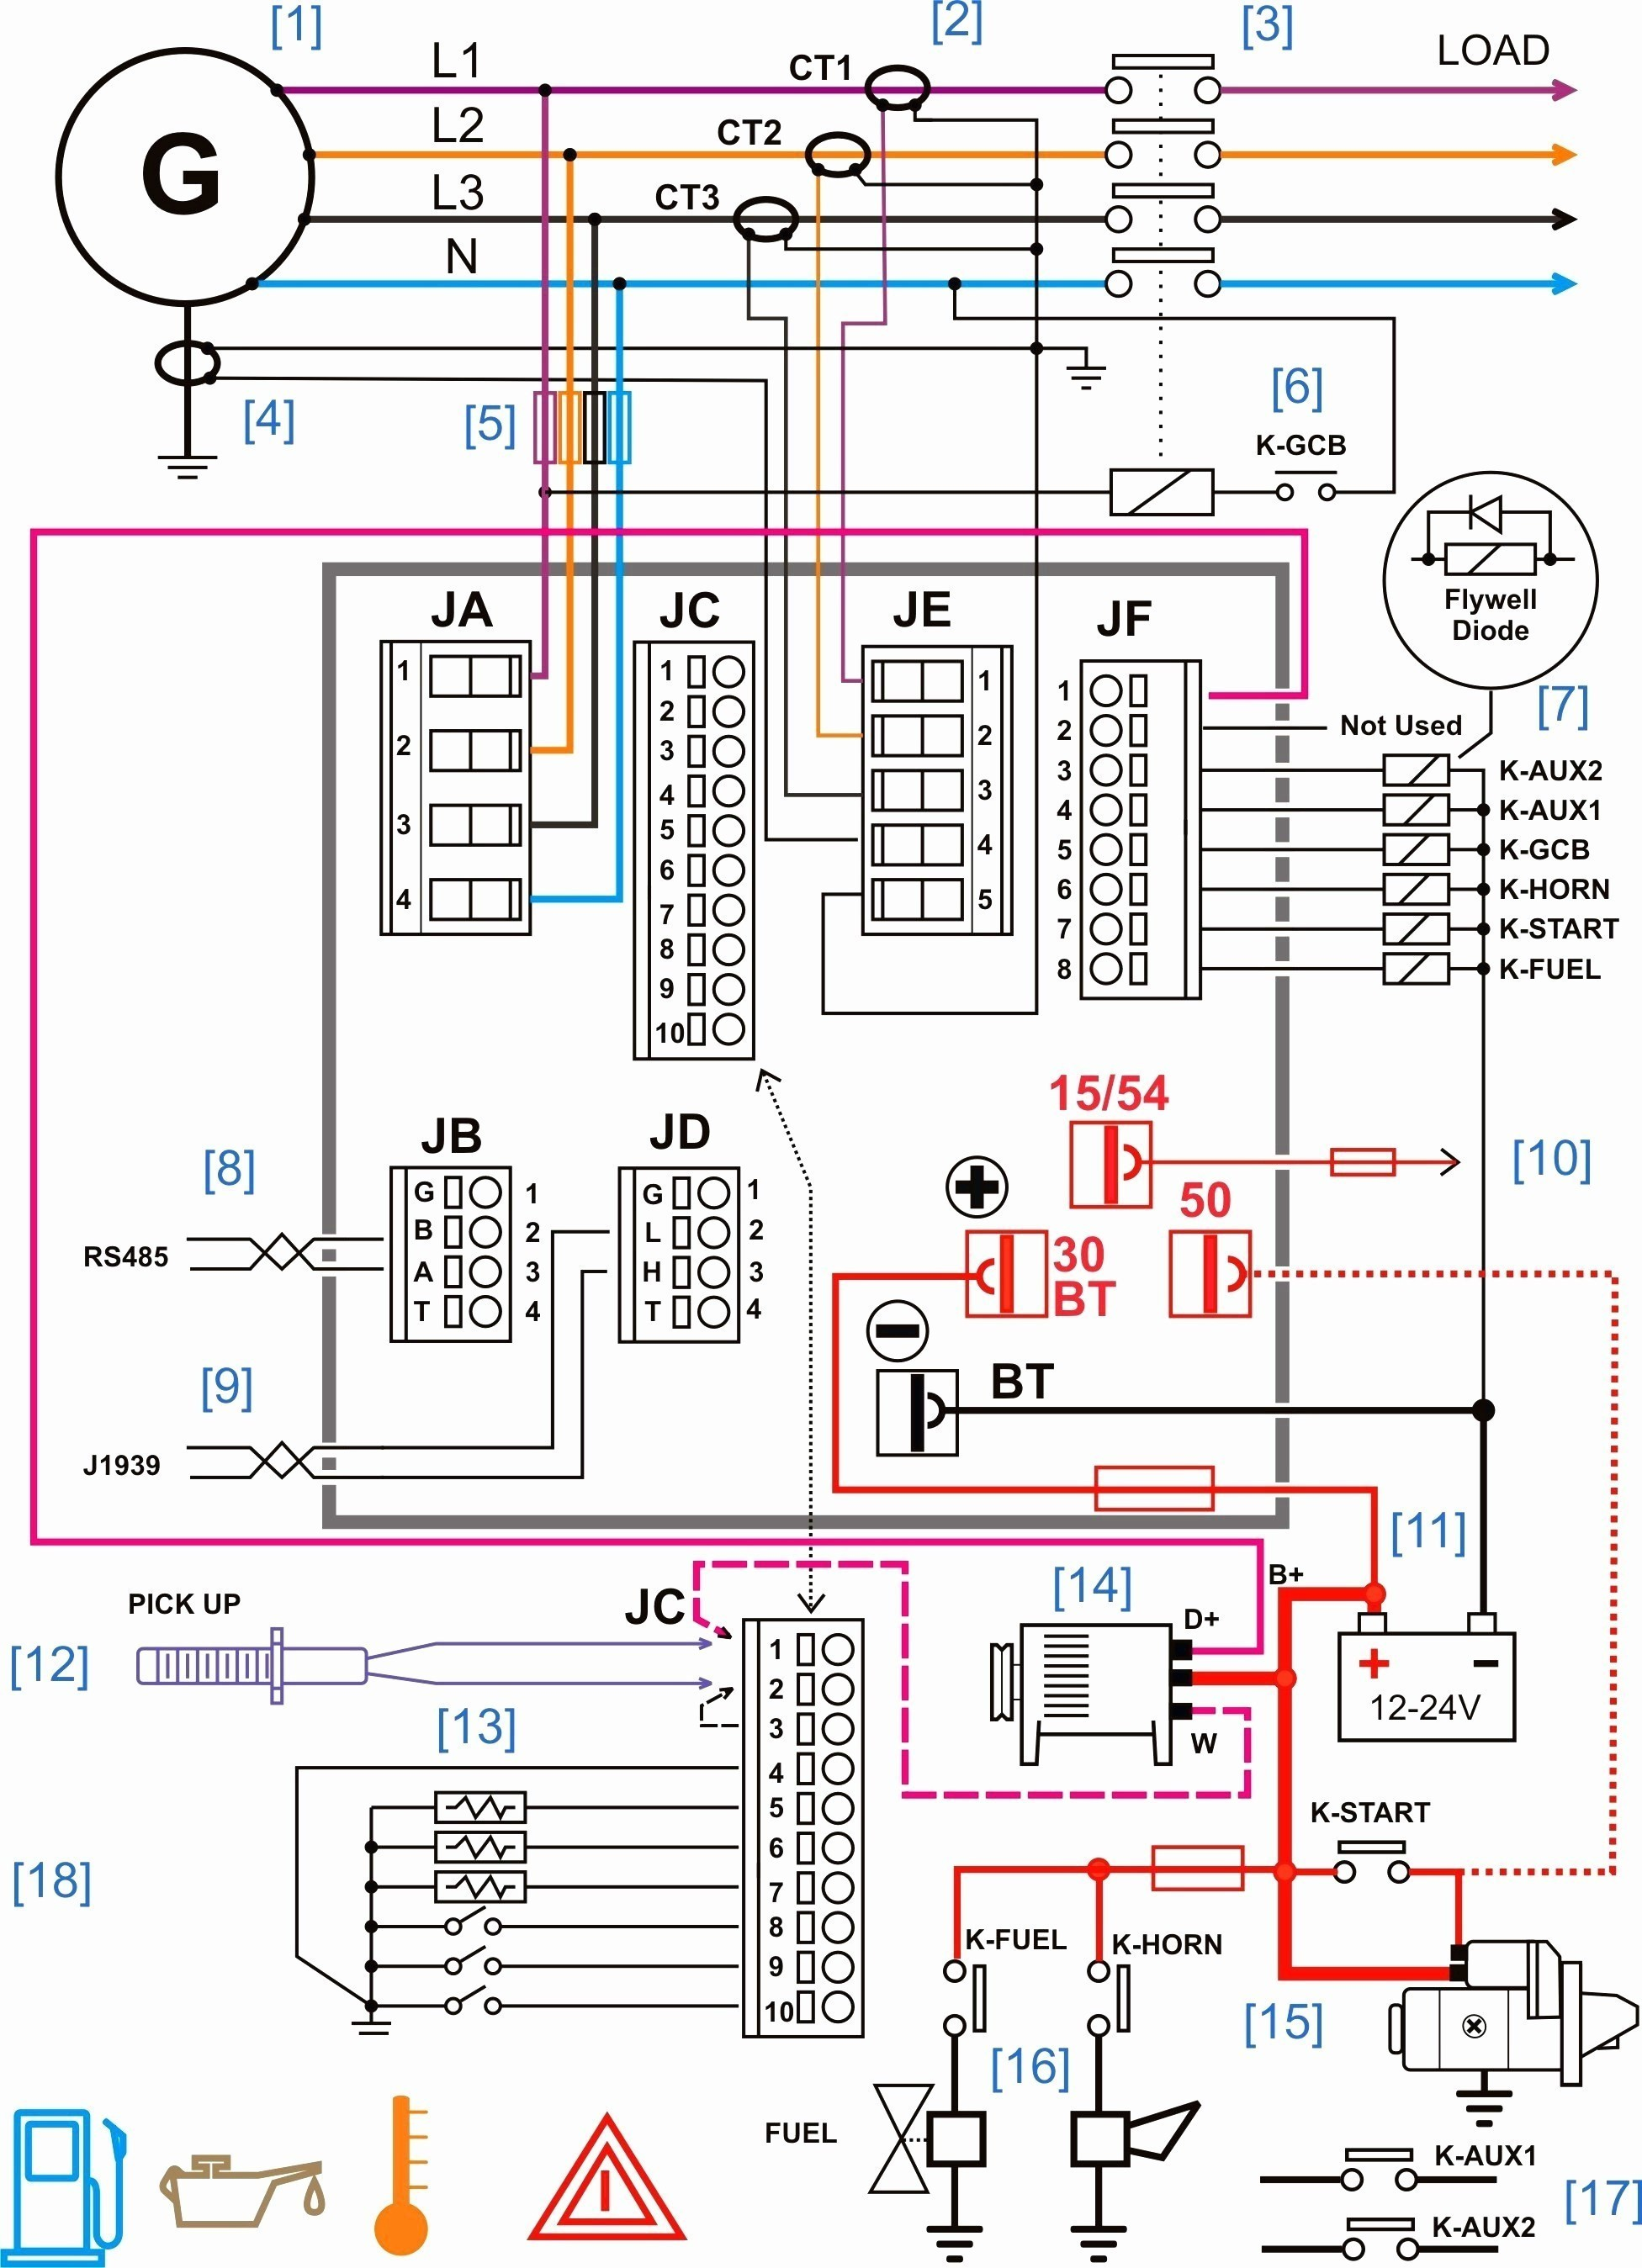 Wire Diagram for Car Stereo Wiring Diagram Book Best Wiring Harness Diagram Book Car Stereo Of Wire Diagram for Car Stereo